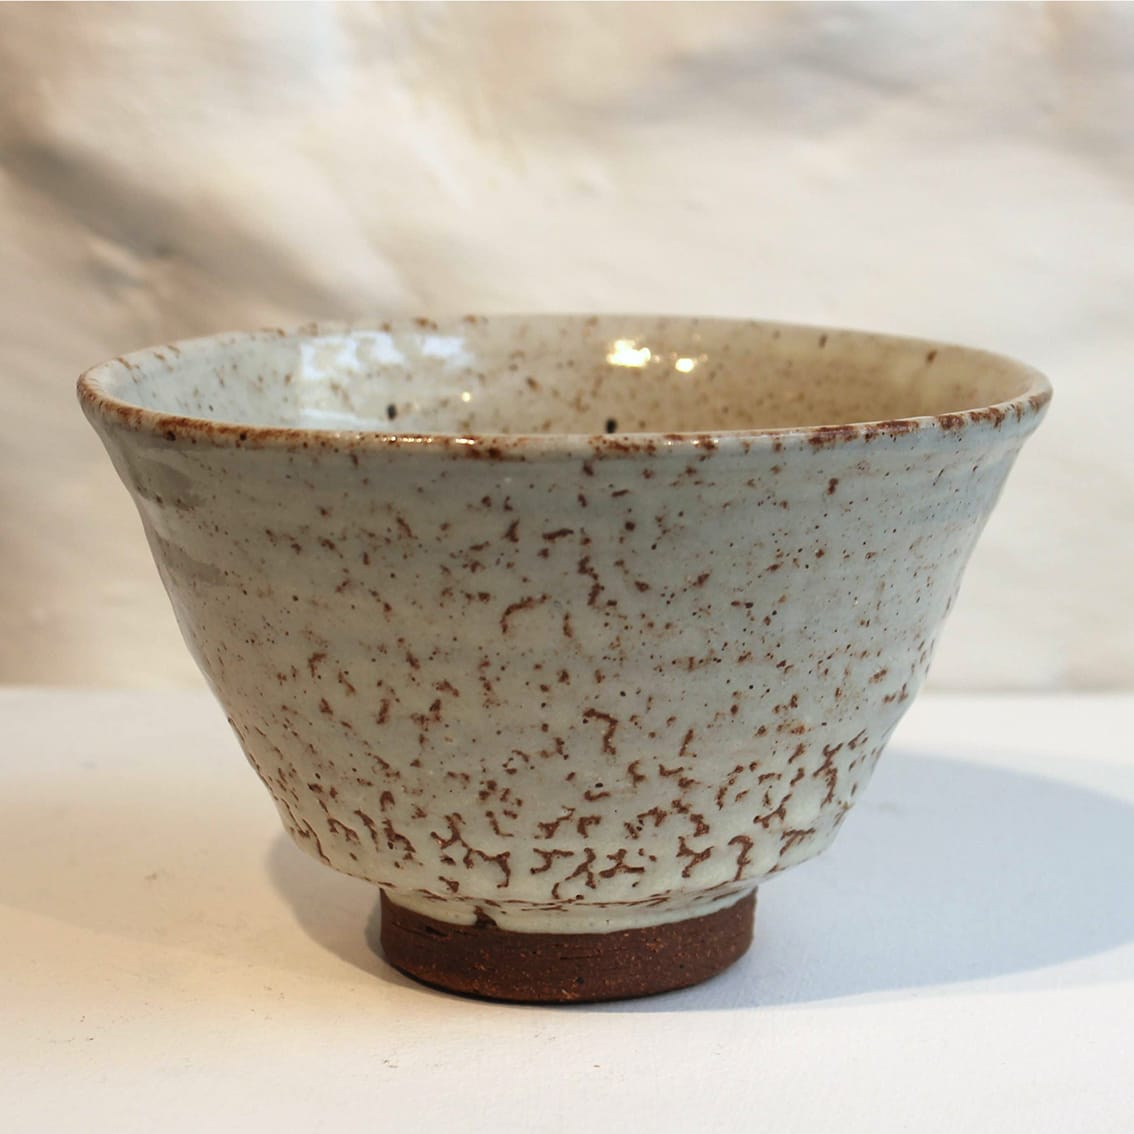 """<span class=""""link fancybox-details-link""""><a href=""""/artists/200-matthew-tyas/works/5462-matthew-tyas-tenmoku-ash-chawan-bowl-2018/"""">View Detail Page</a></span><div class=""""artist""""><strong>Matthew Tyas</strong></div> <div class=""""title""""><em>Tenmoku Ash Chawan Bowl</em>, 2018</div> <div class=""""signed_and_dated"""">stamped by the artist</div> <div class=""""medium"""">glazed thrown stoneware</div><div class=""""copyright_line"""">Copyright The Artist</div>"""